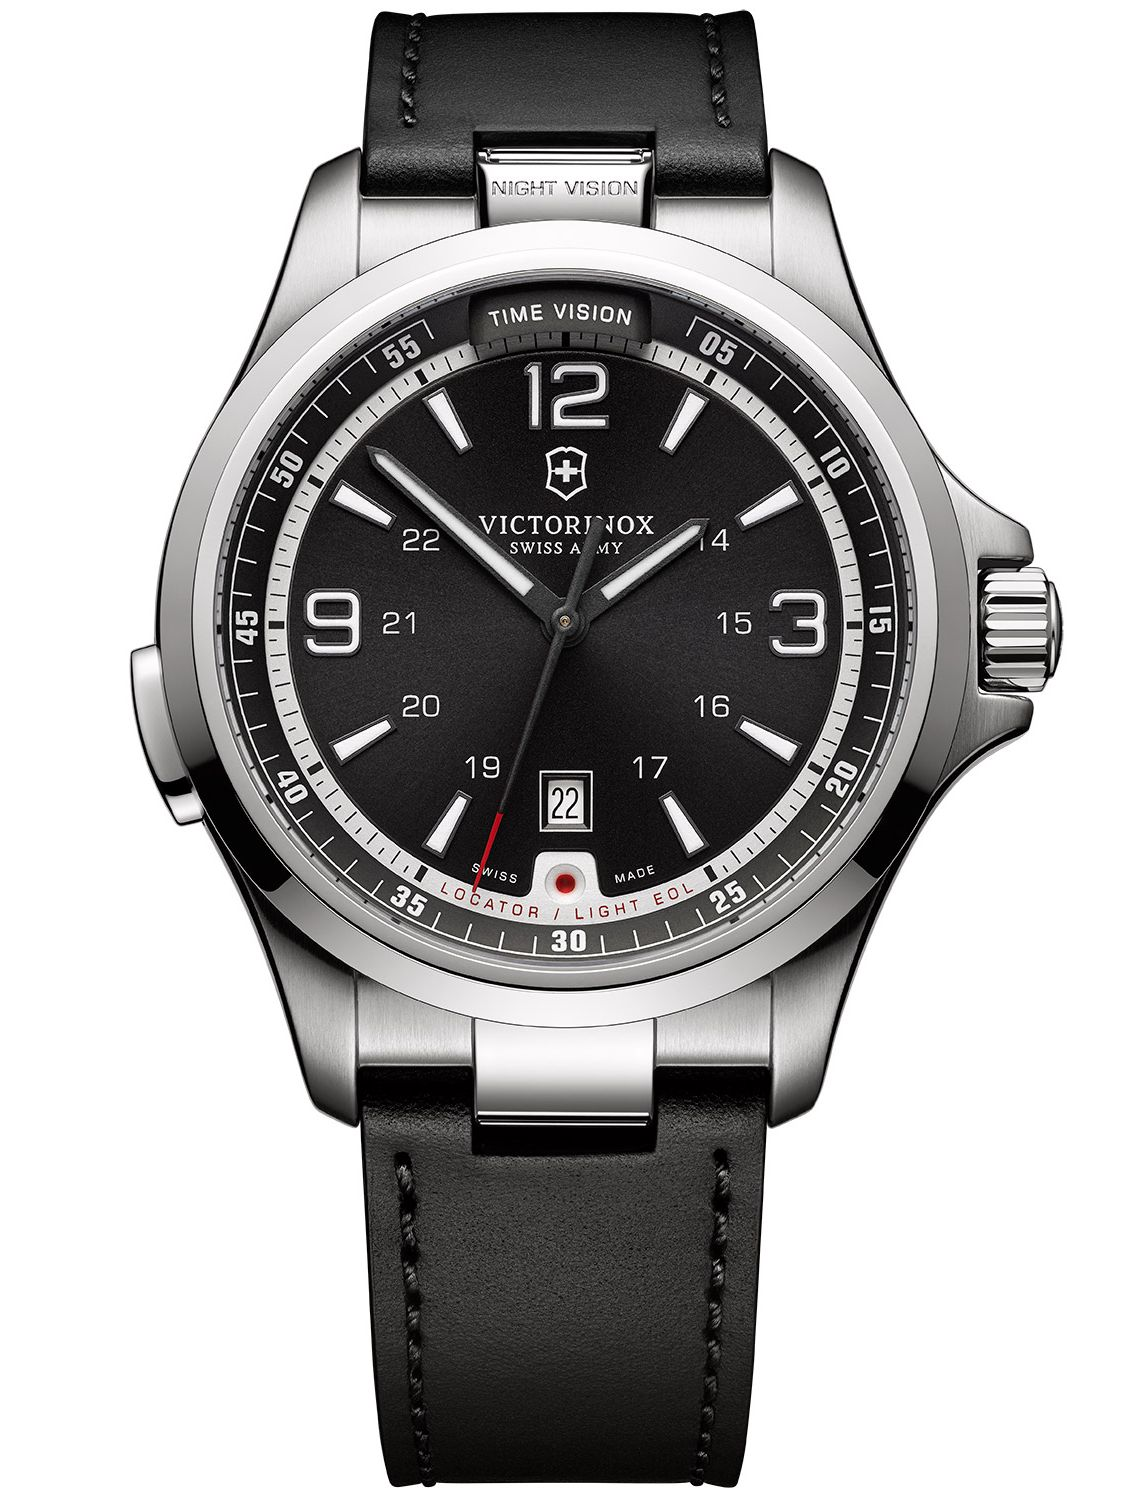 Victorinox 241664 Night Vision Herrenuhr mit Le...